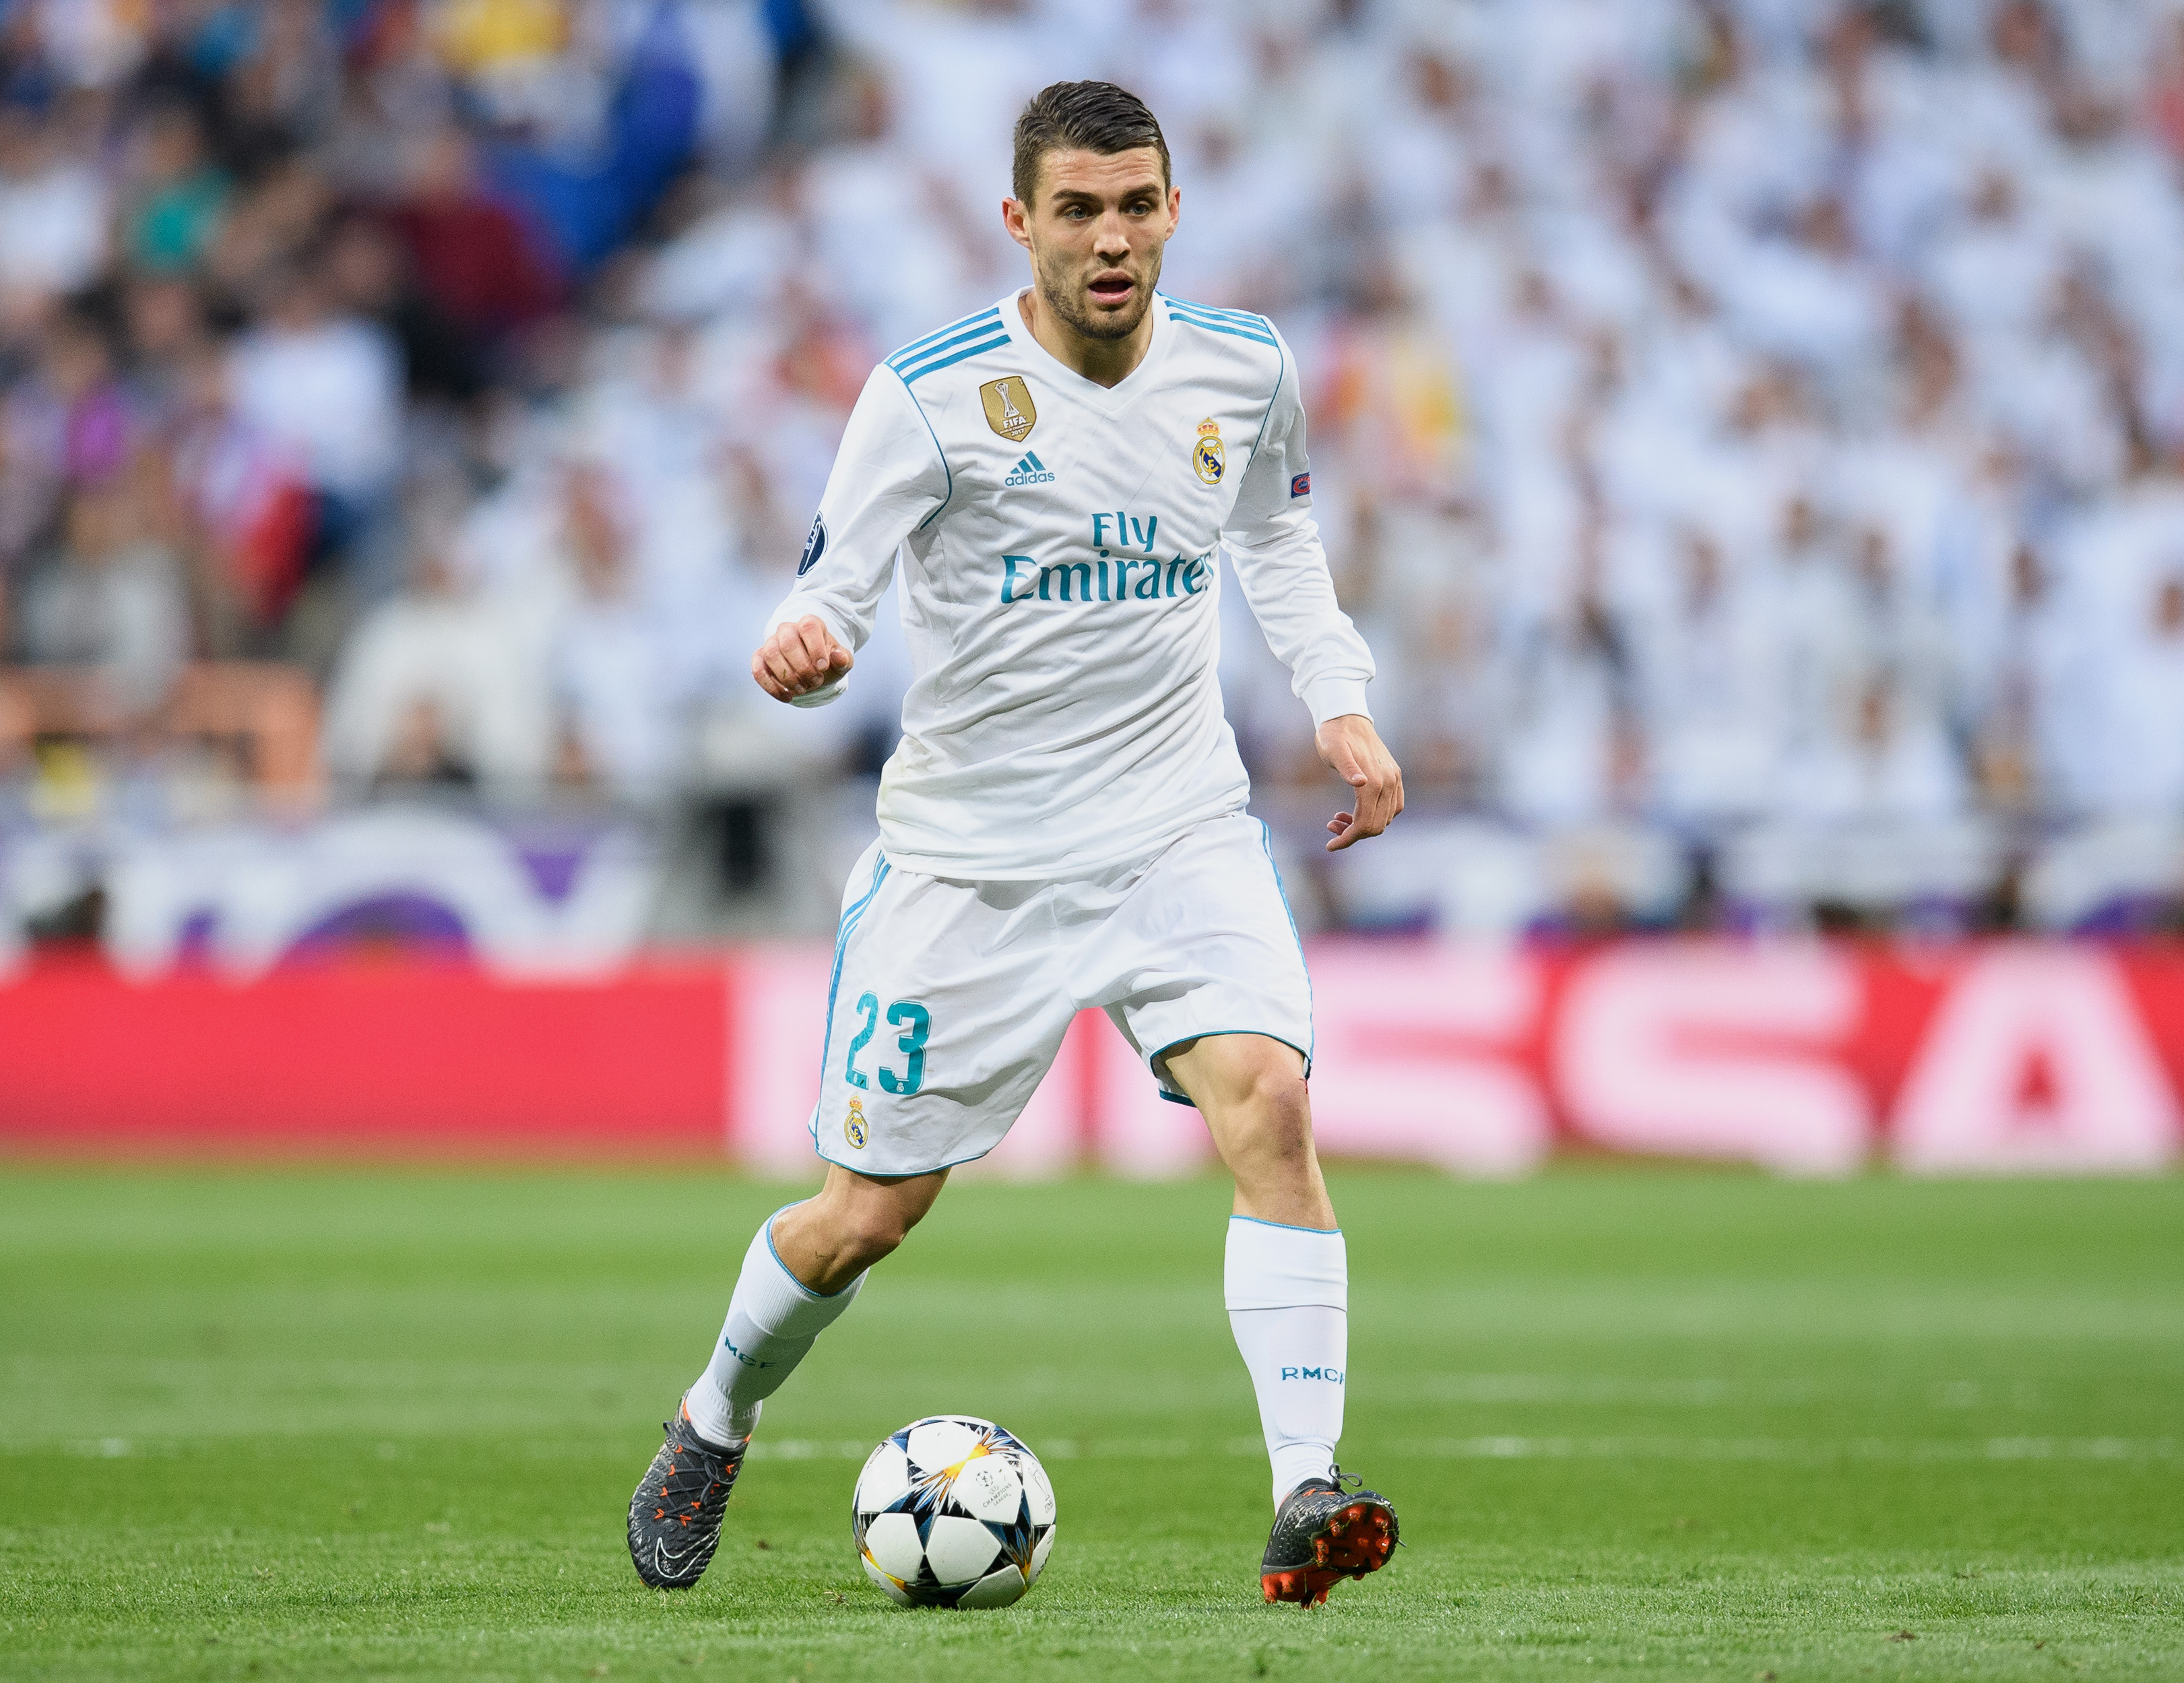 Chelsea complete loan signing of Real Madrid midfielder Mateo Kovacic